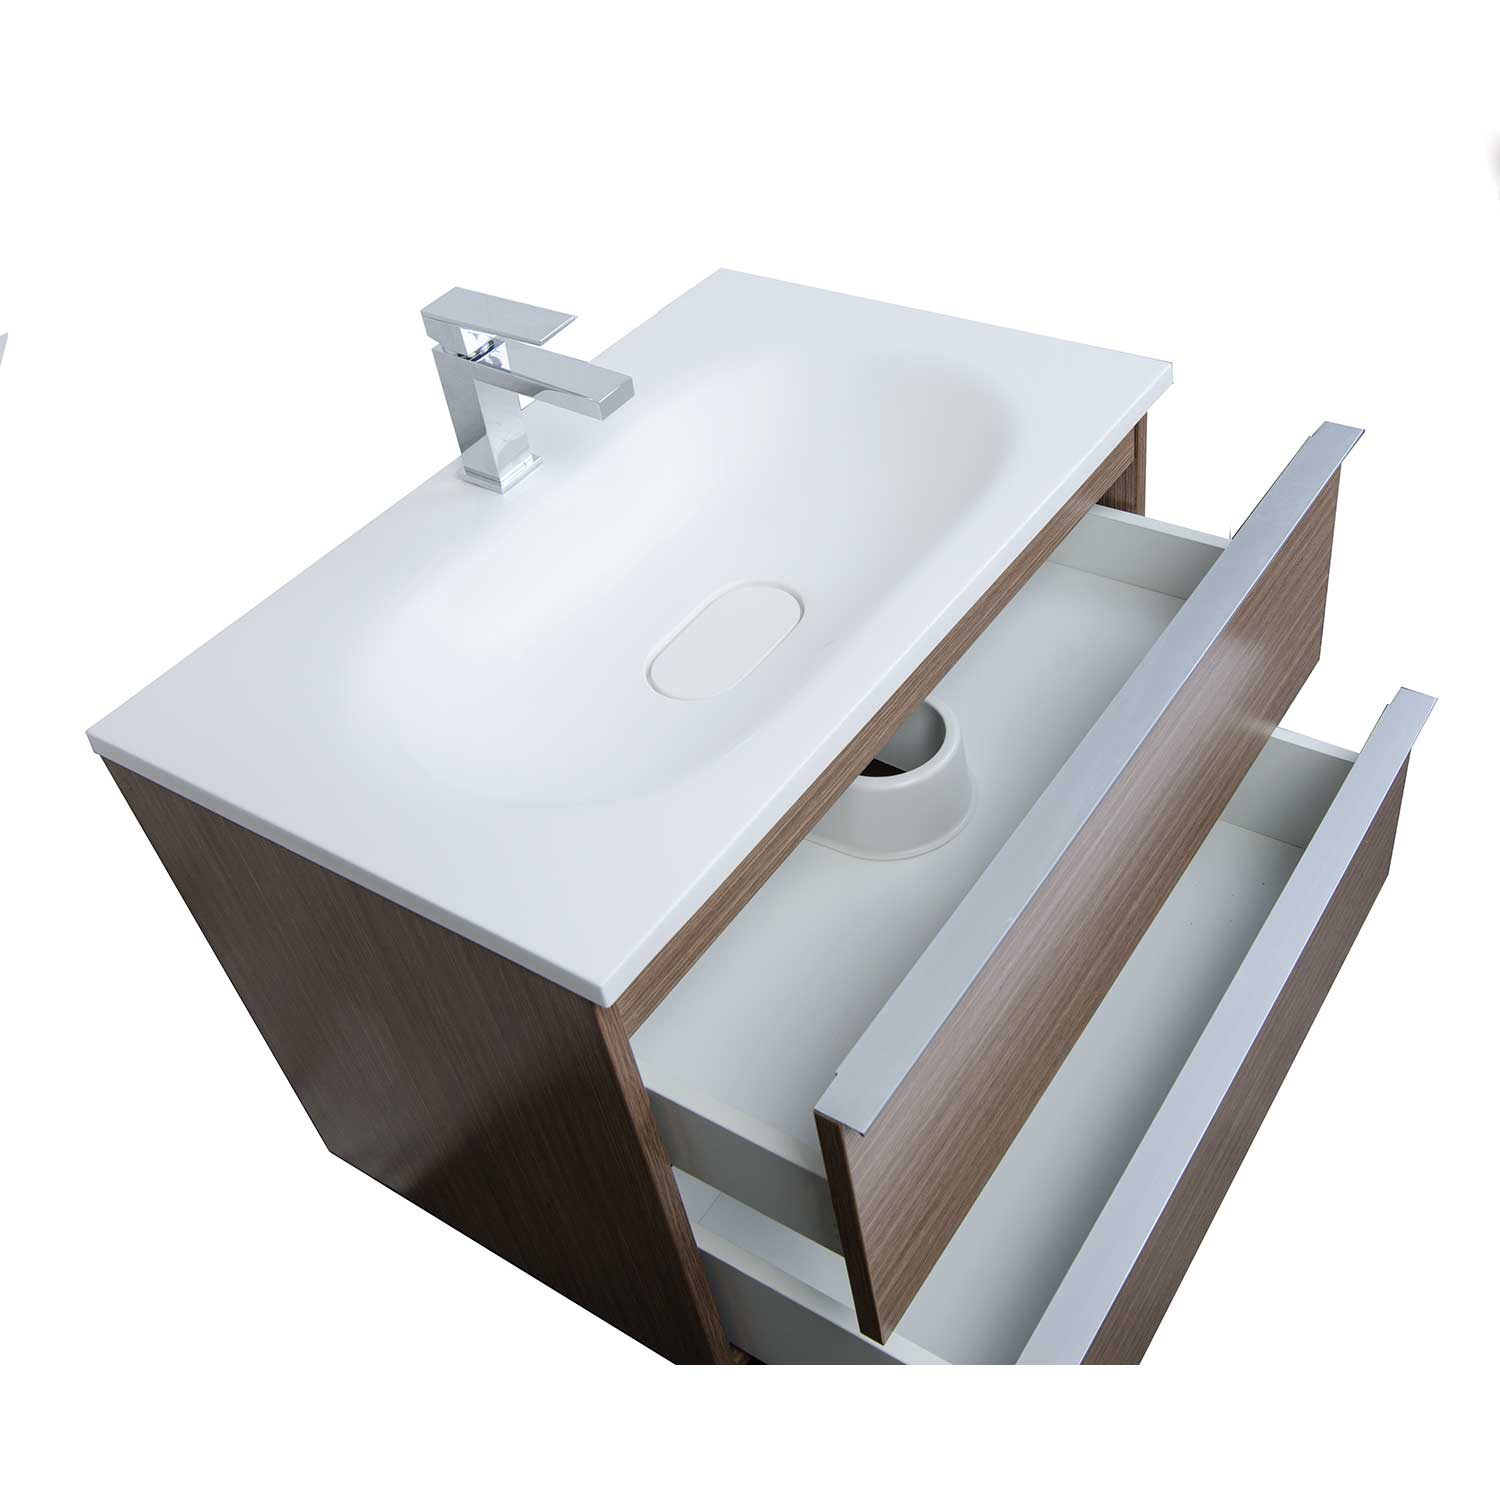 Moving Bathroom Vanity Light: Buy 29.5 Inch Wall-Mount Modern Bathroom Vanity Set Light